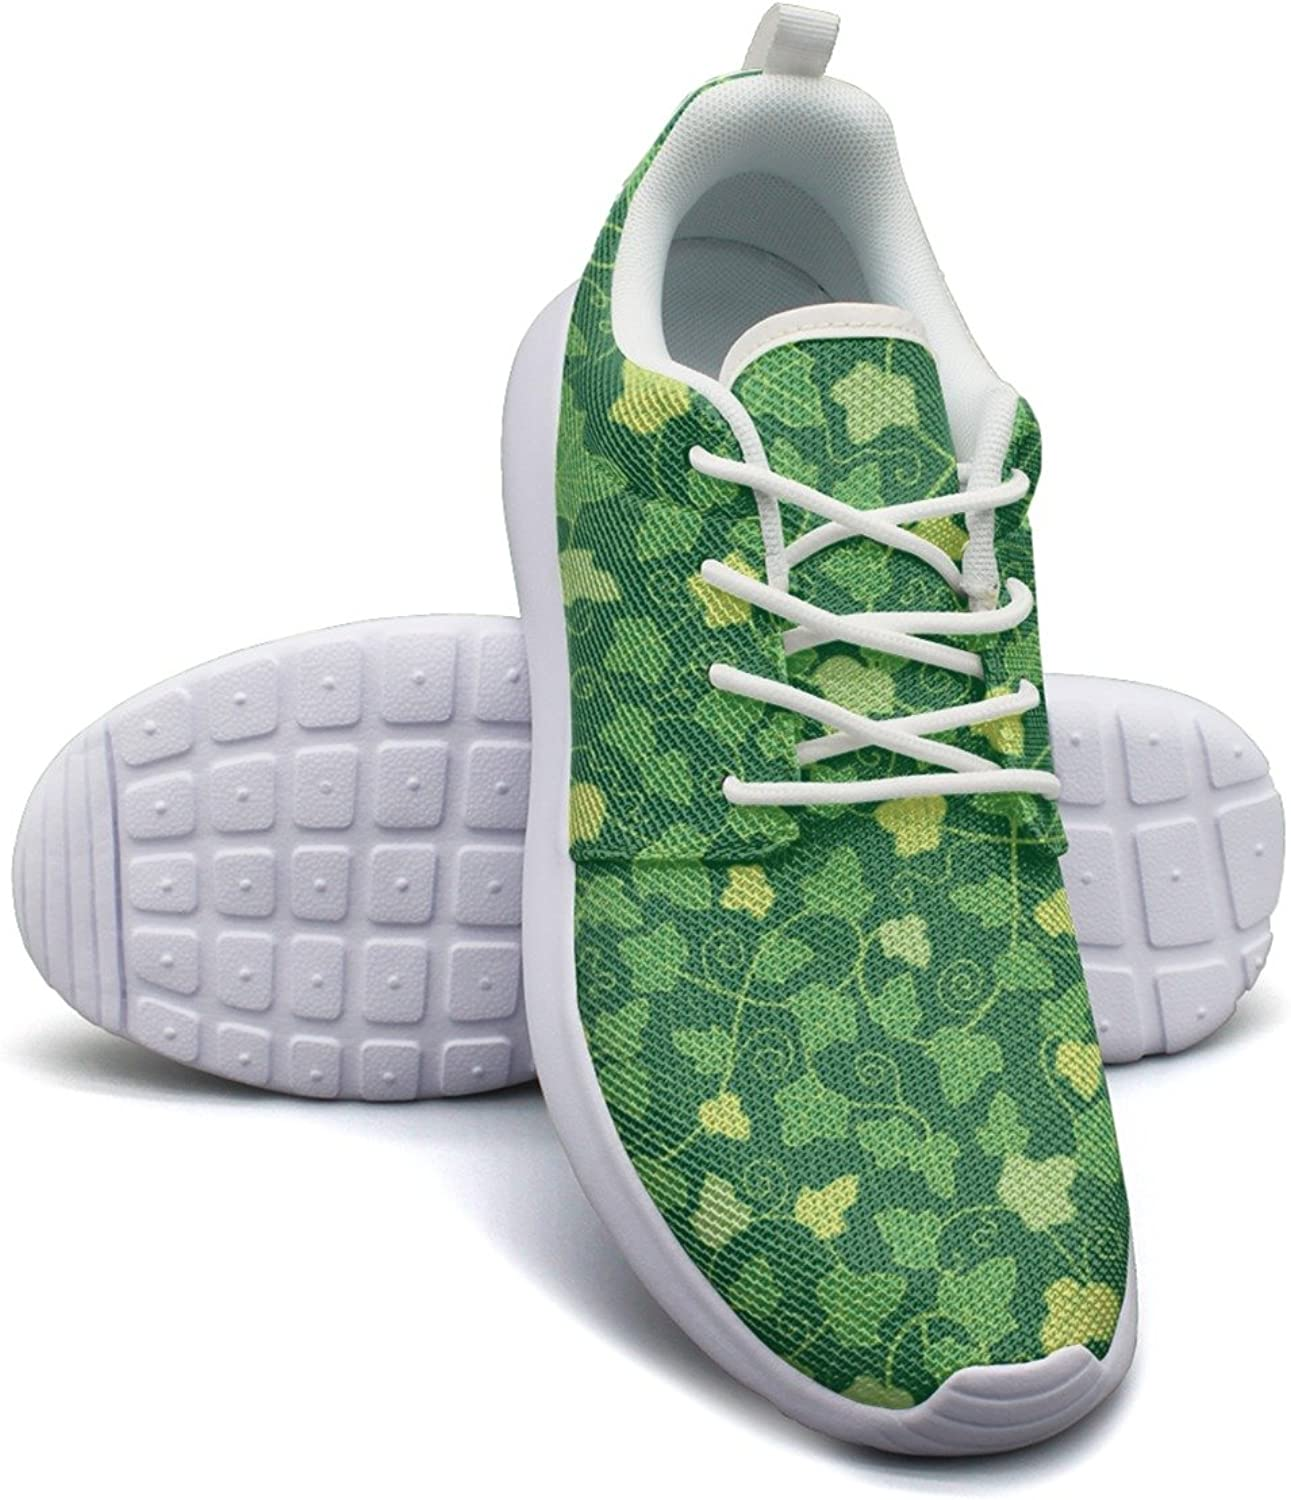 Artificial Green Ivy Planter Women's Lightweight Mesh Sneakers shoes Classic Athletic shoes